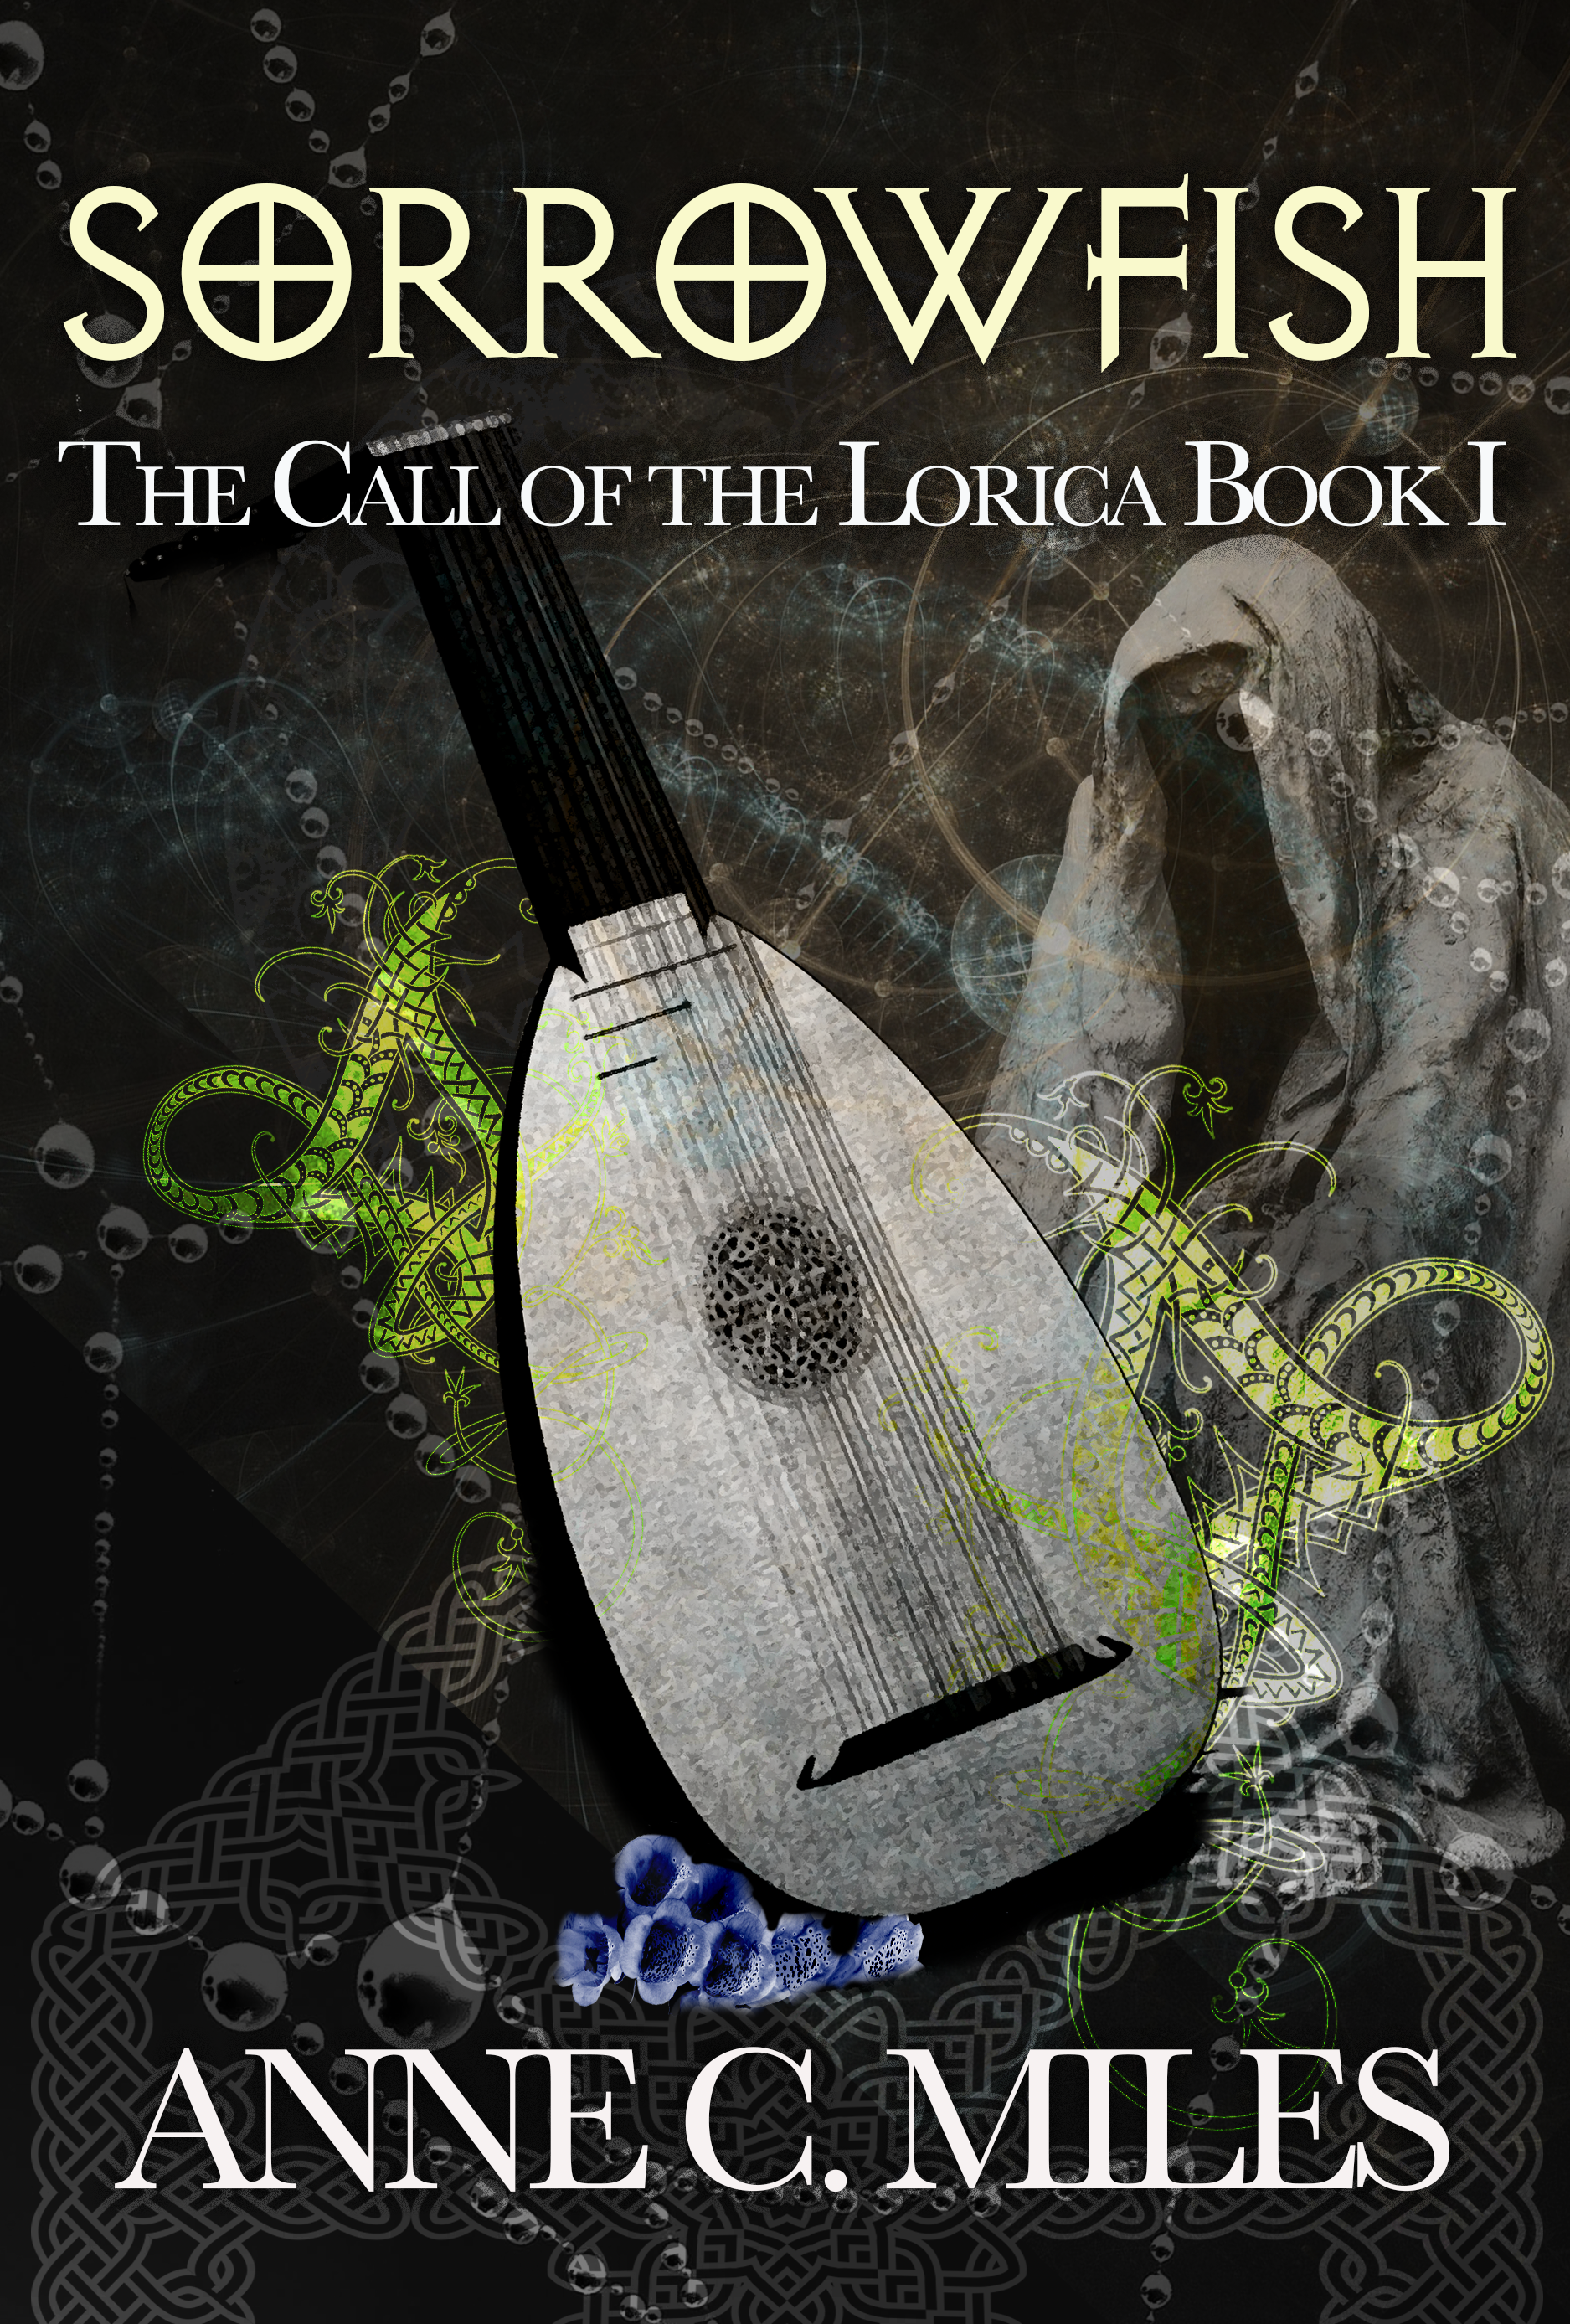 Cover of Sorrowfish: The Call of the Lorica Book 1 by Anne C. Miles. A lute with a mysterious cloaked figure in the background and blue flowers underneath.